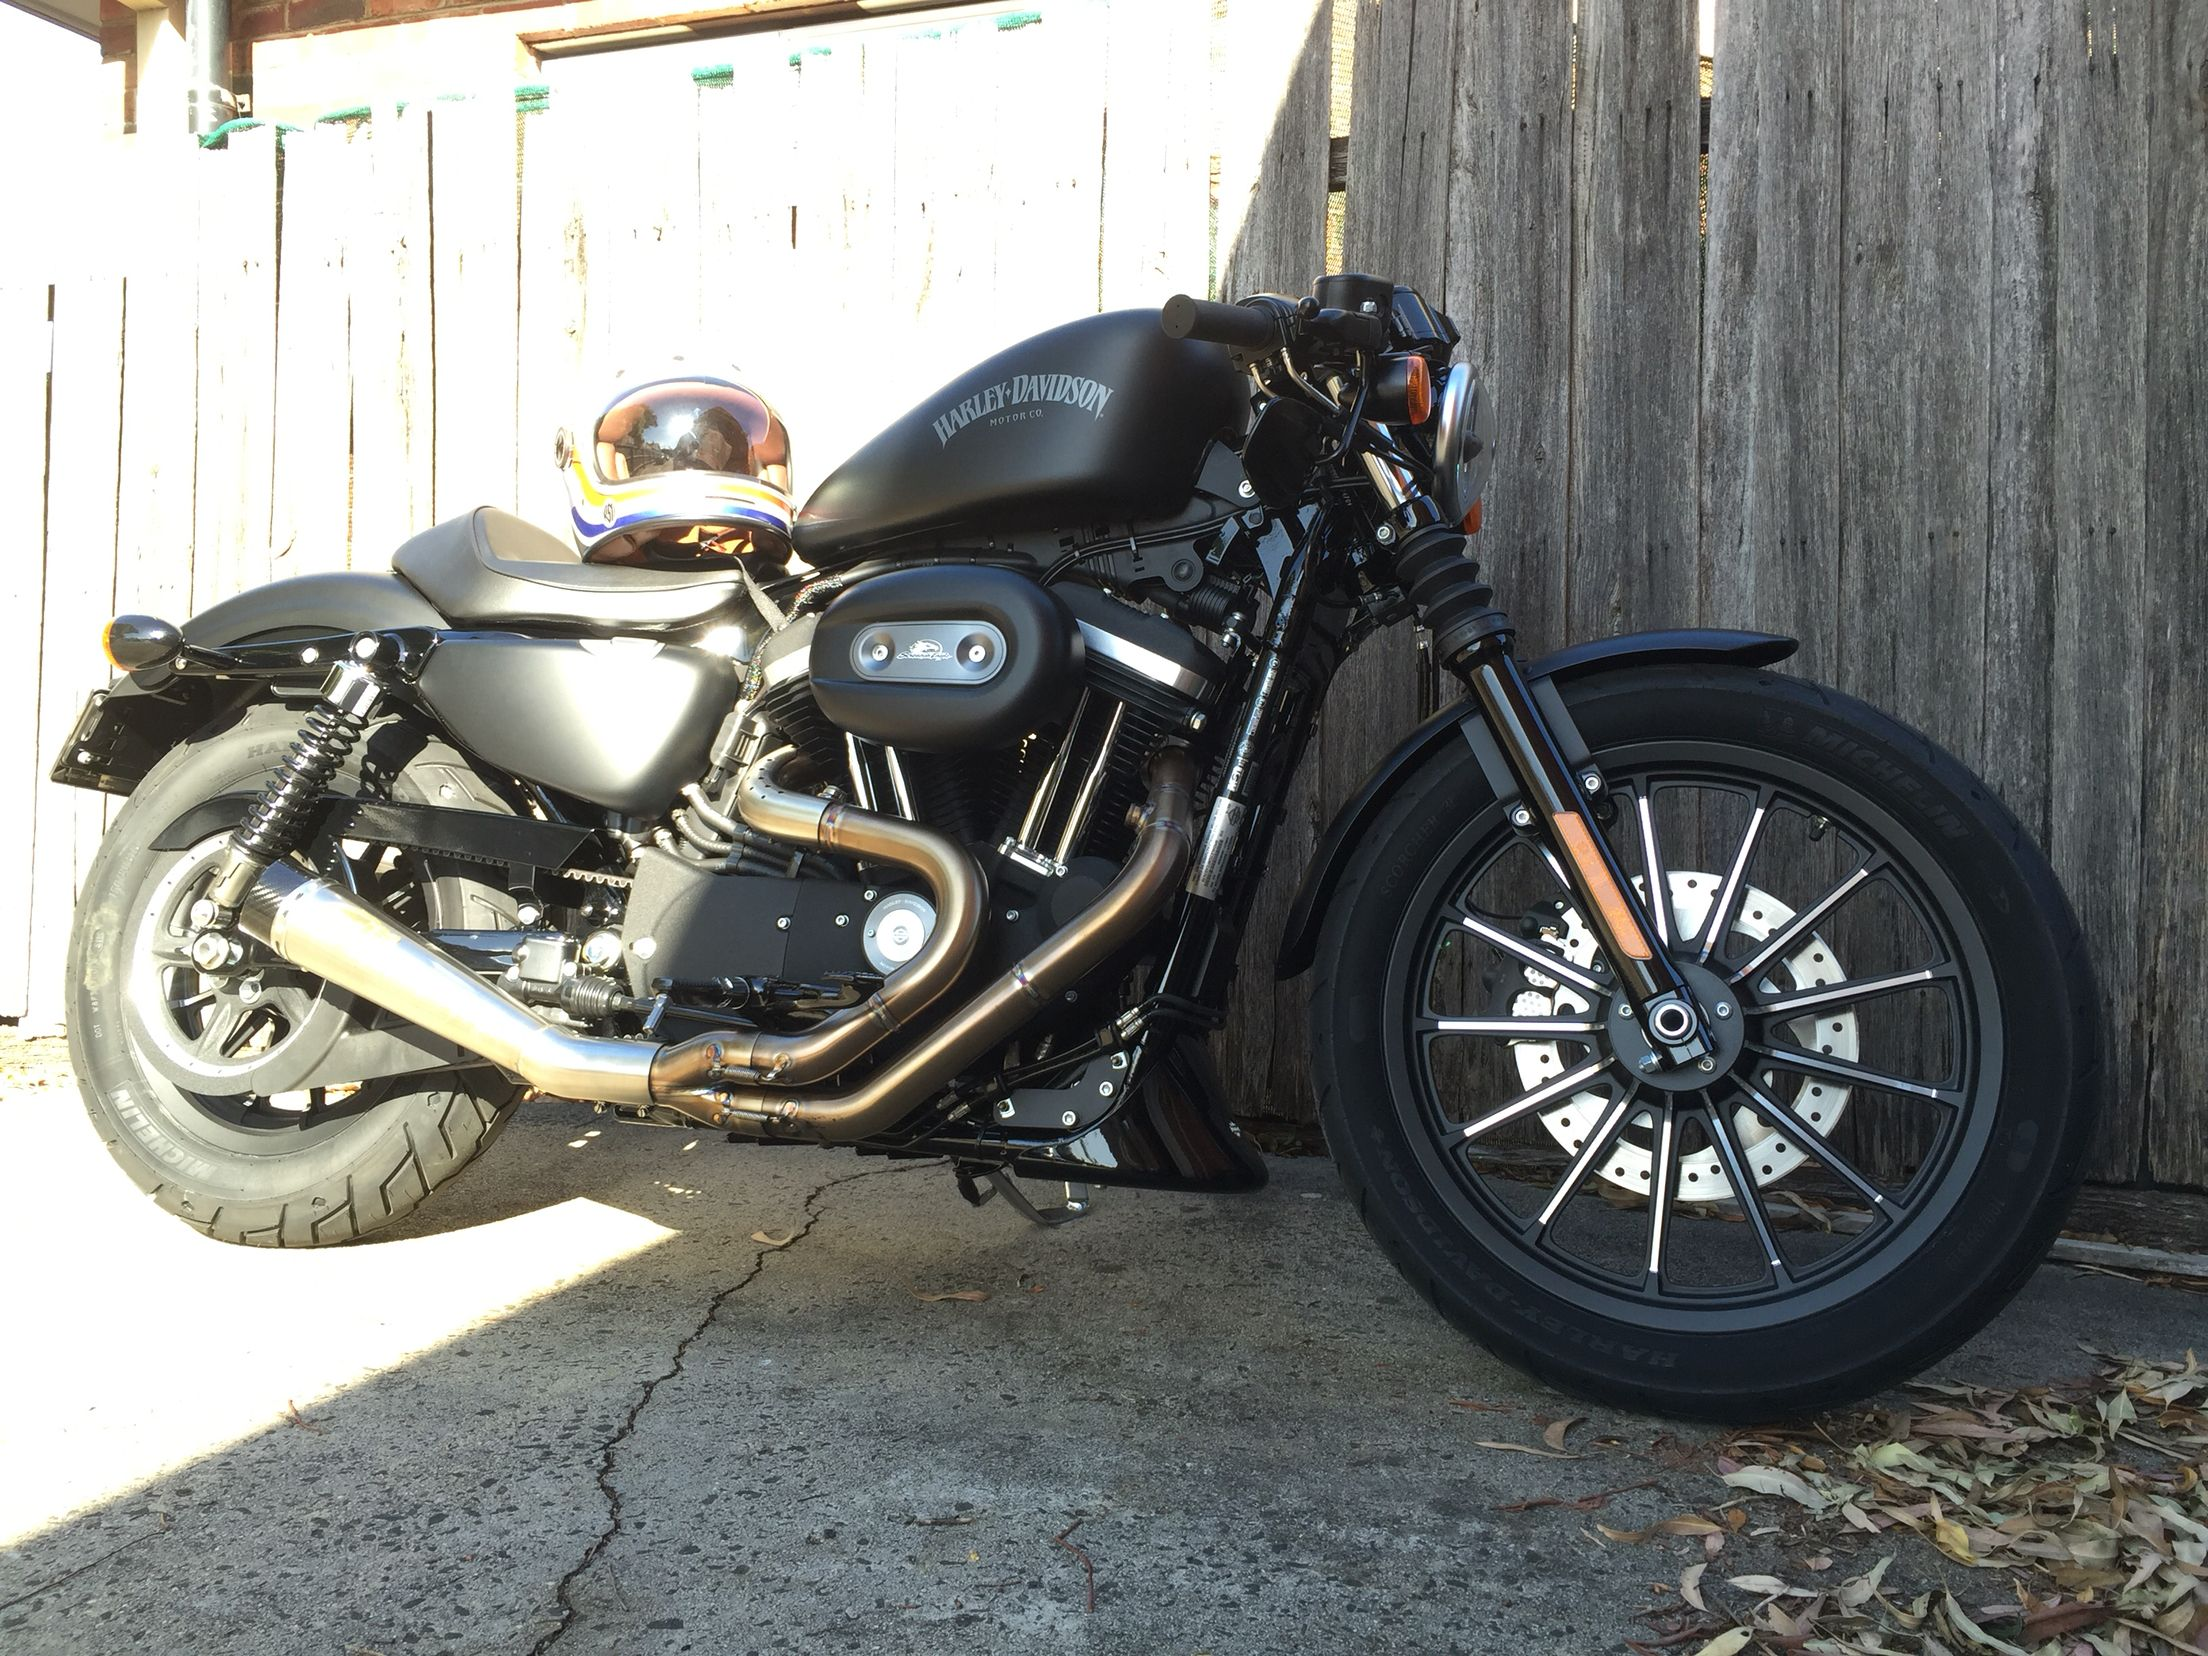 My Harley Davidson 2015 Iron 883 Sportster Cafe Racer With RSD 2 In 1 Pipes And Bell Bullit Helmet